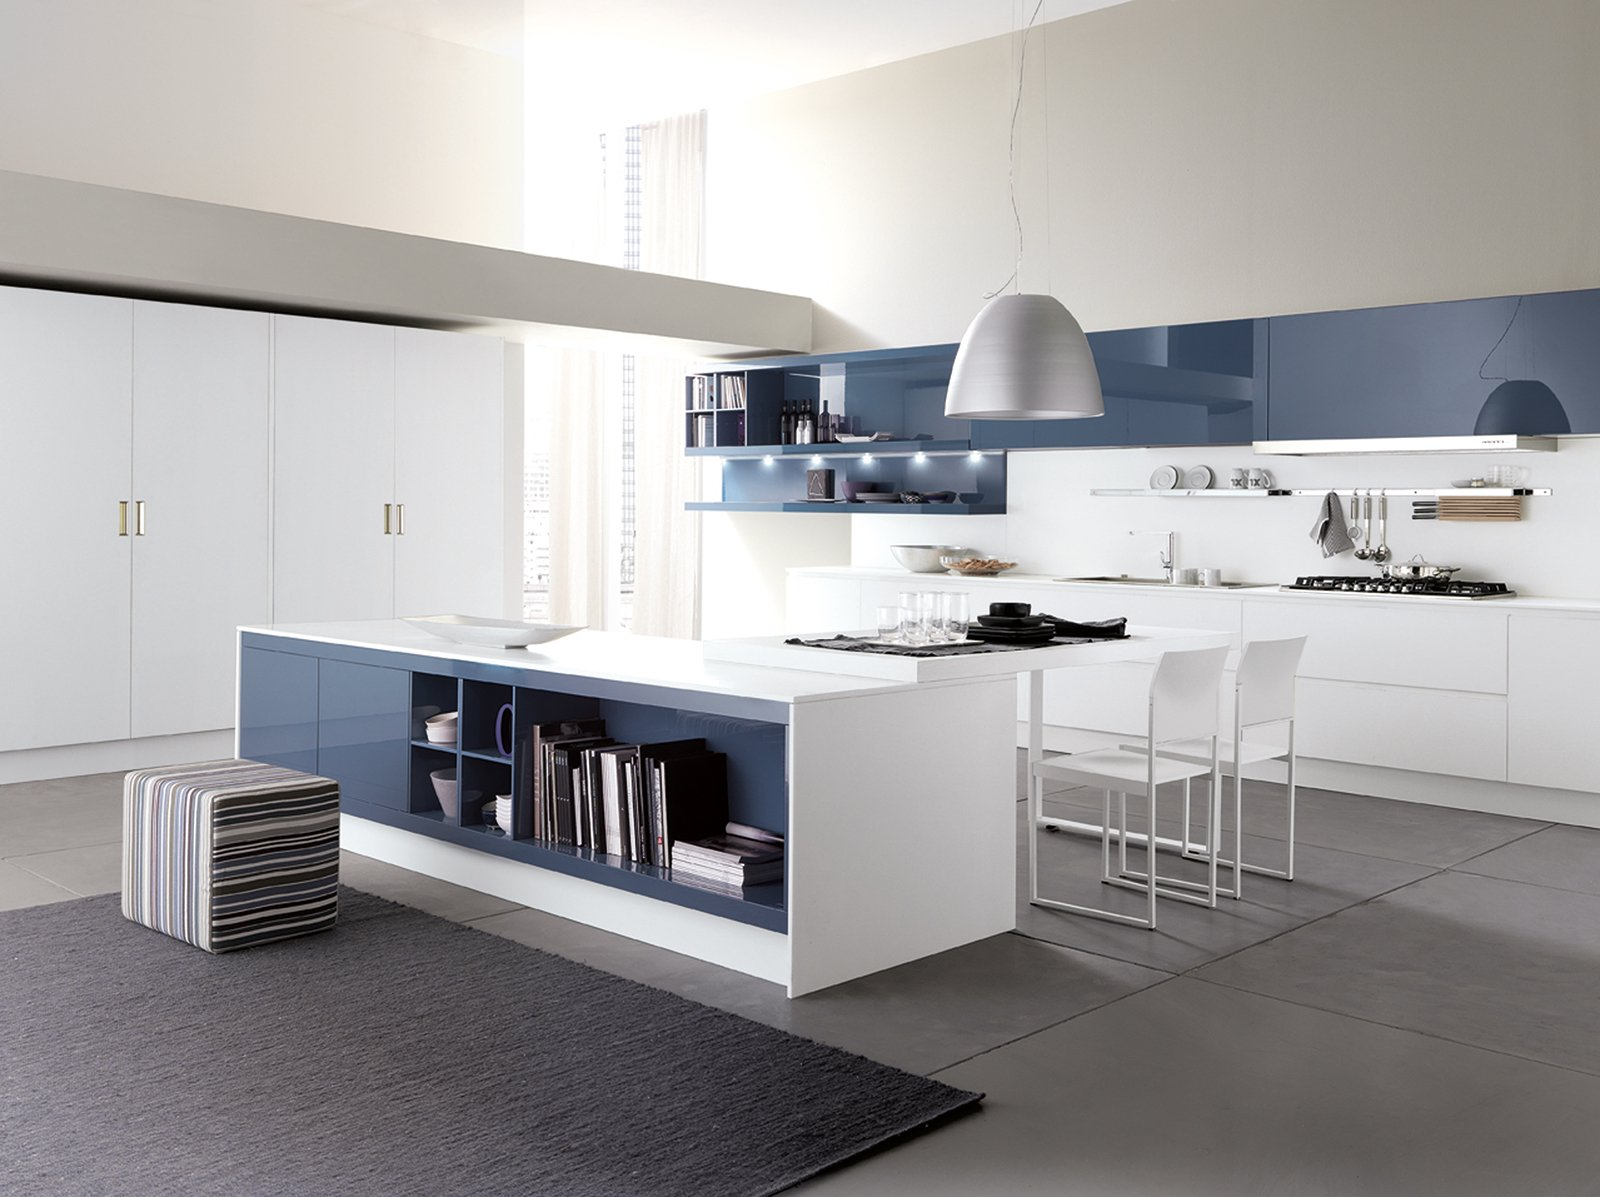 Awesome Tavolo Per Cucina Piccola Contemporary - Design & Ideas ...